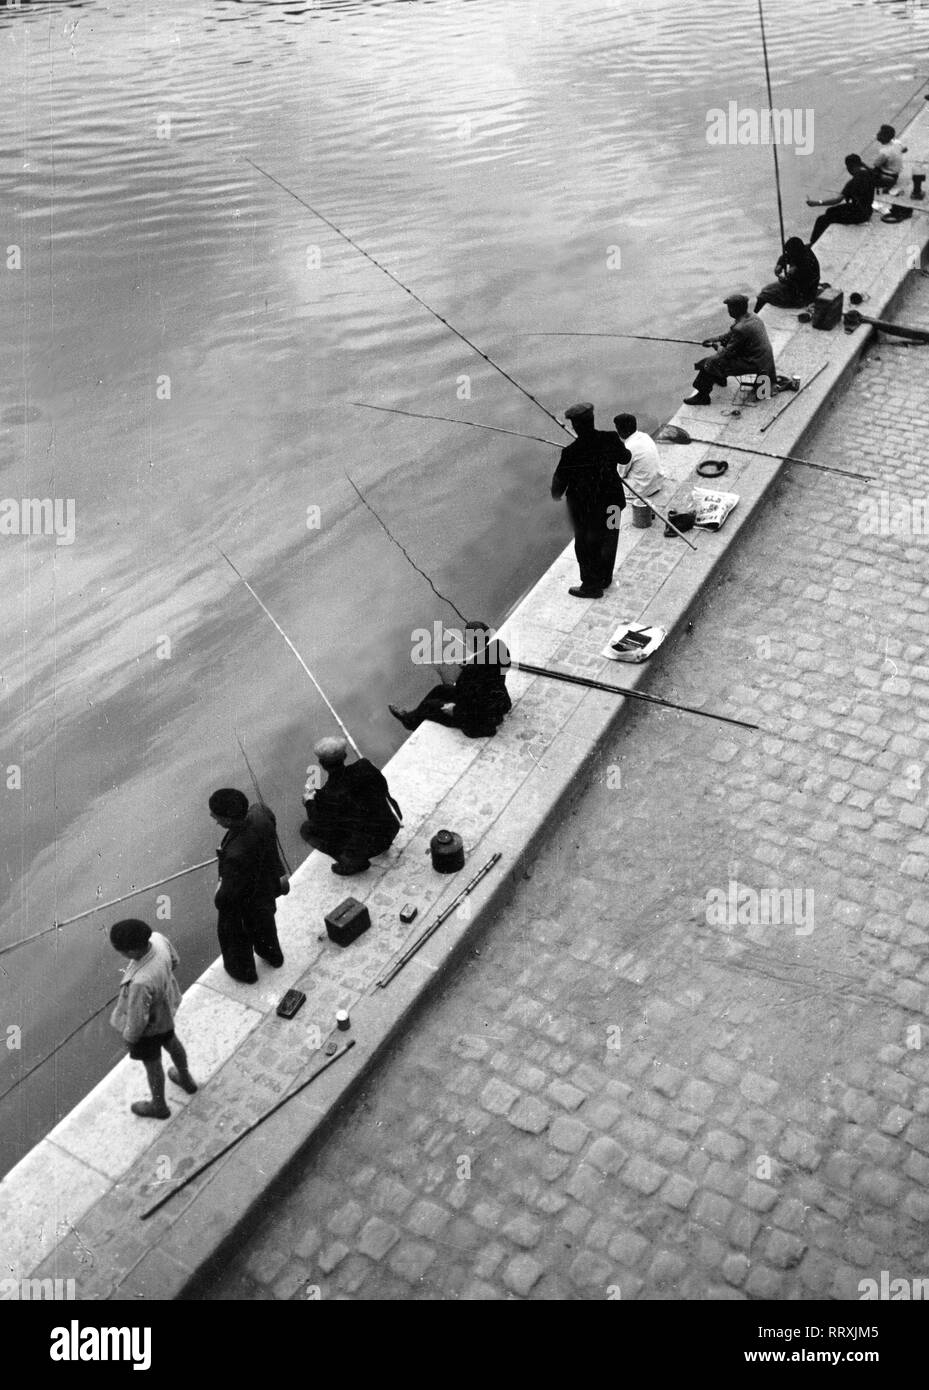 Frankreich - France in 1950s. Angler in Paris on the Seine riverside. Photo by Erich Andres Frankreich, Paris, Angler an der Seine. Stock Photo